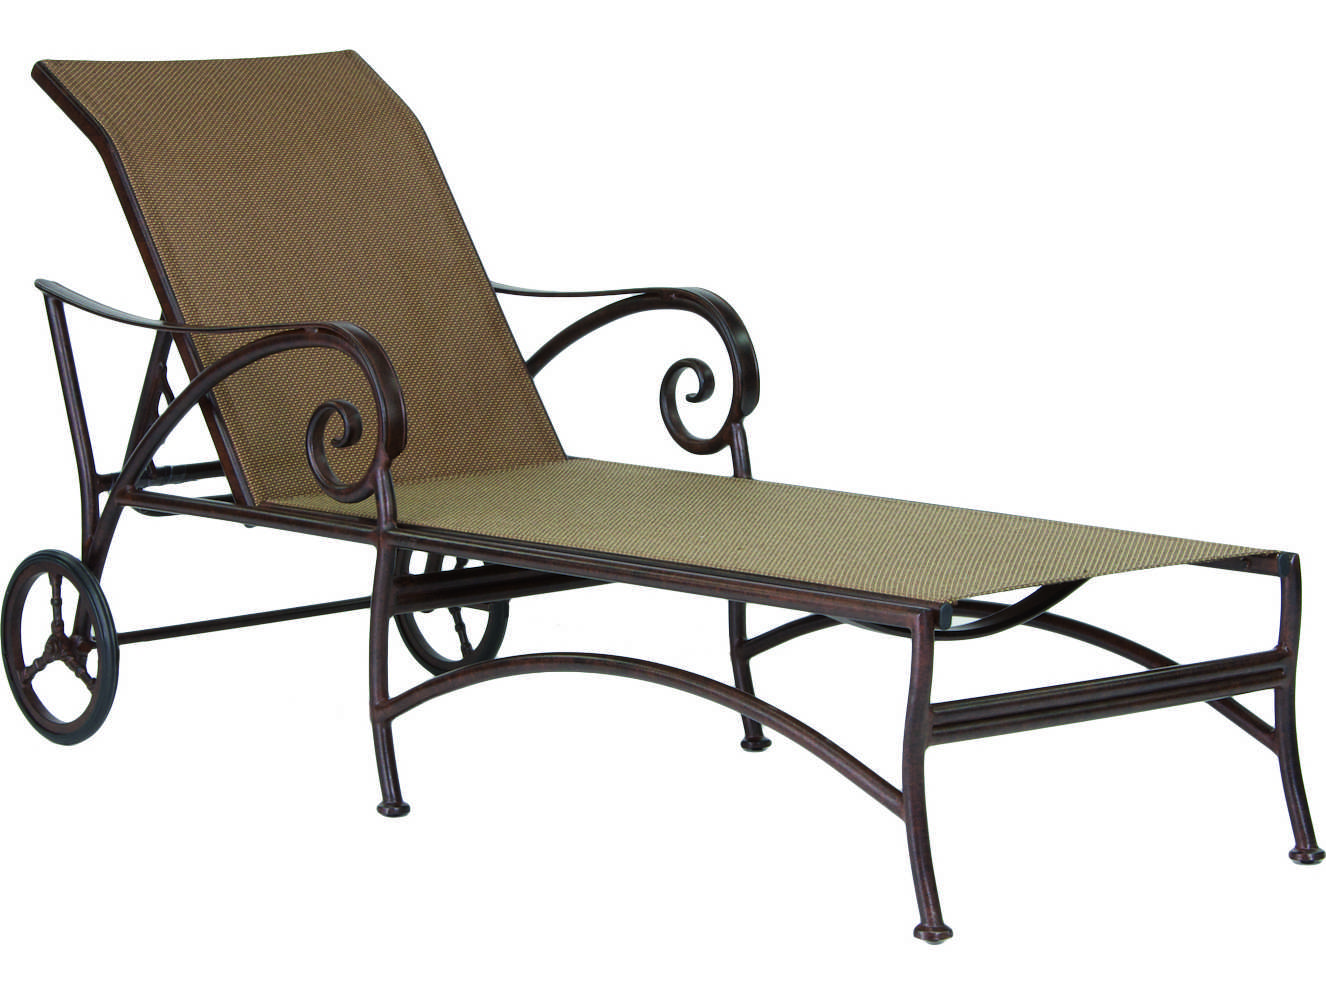 Castelle lucerne sling cast aluminum adjustable chaise for Aluminum chaise lounge with wheels